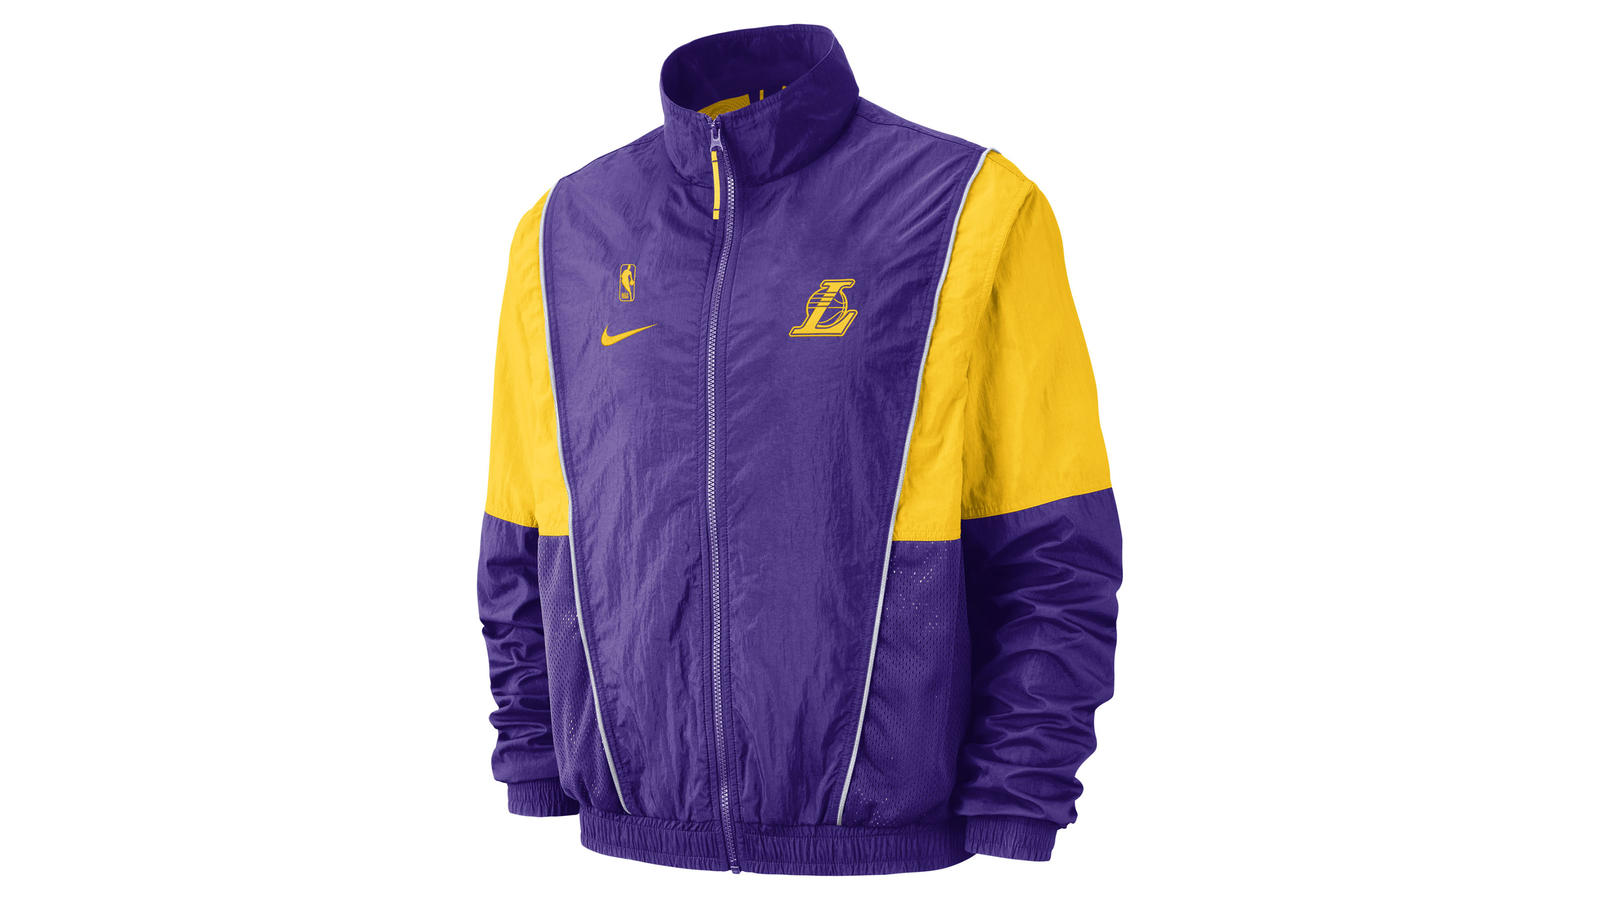 Nba lakerstracksuit 2018 16x9 hd 1600